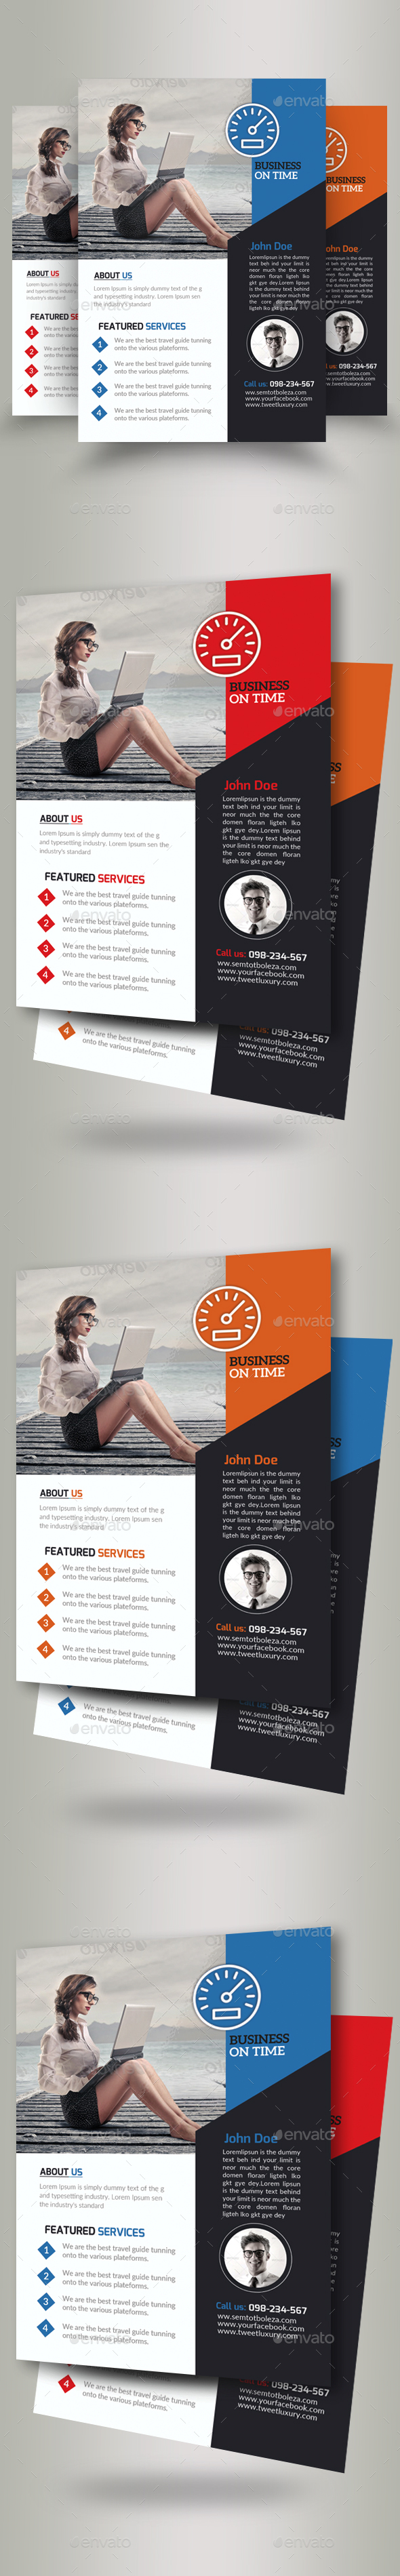 Business Motivation Flyer Template - Corporate Flyers